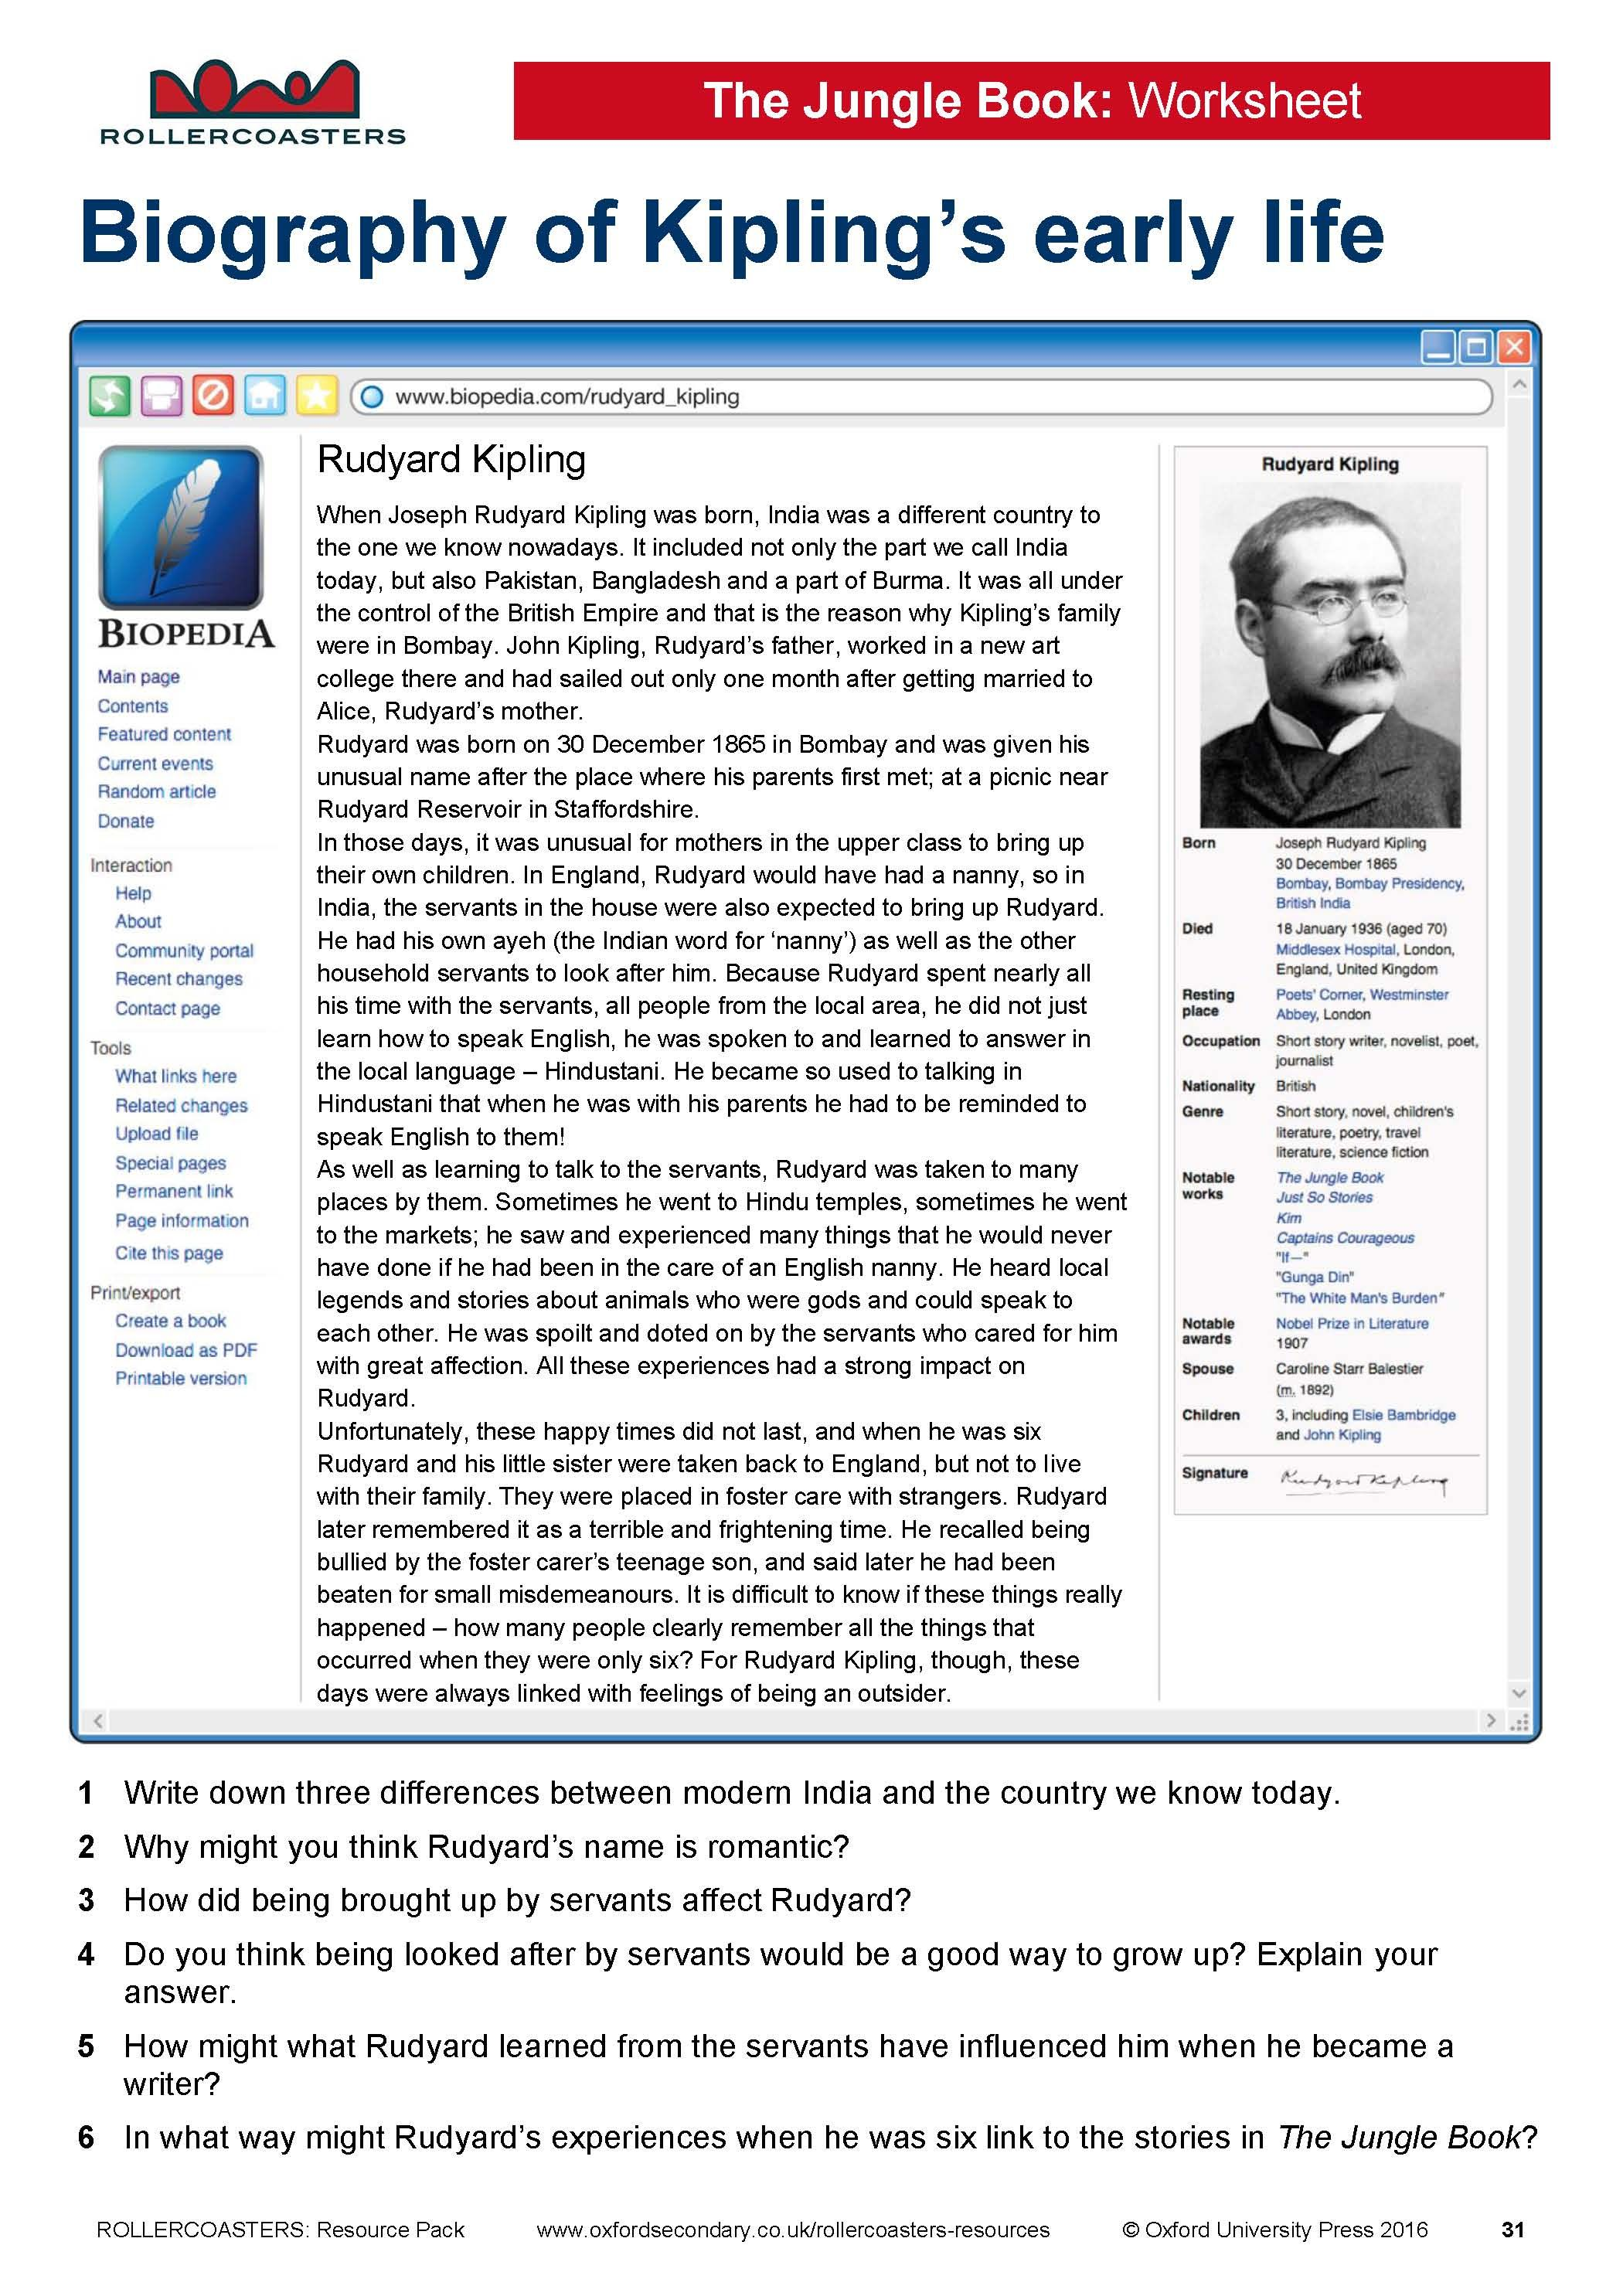 000 Introduce your students to Rudyard Kipling with this free